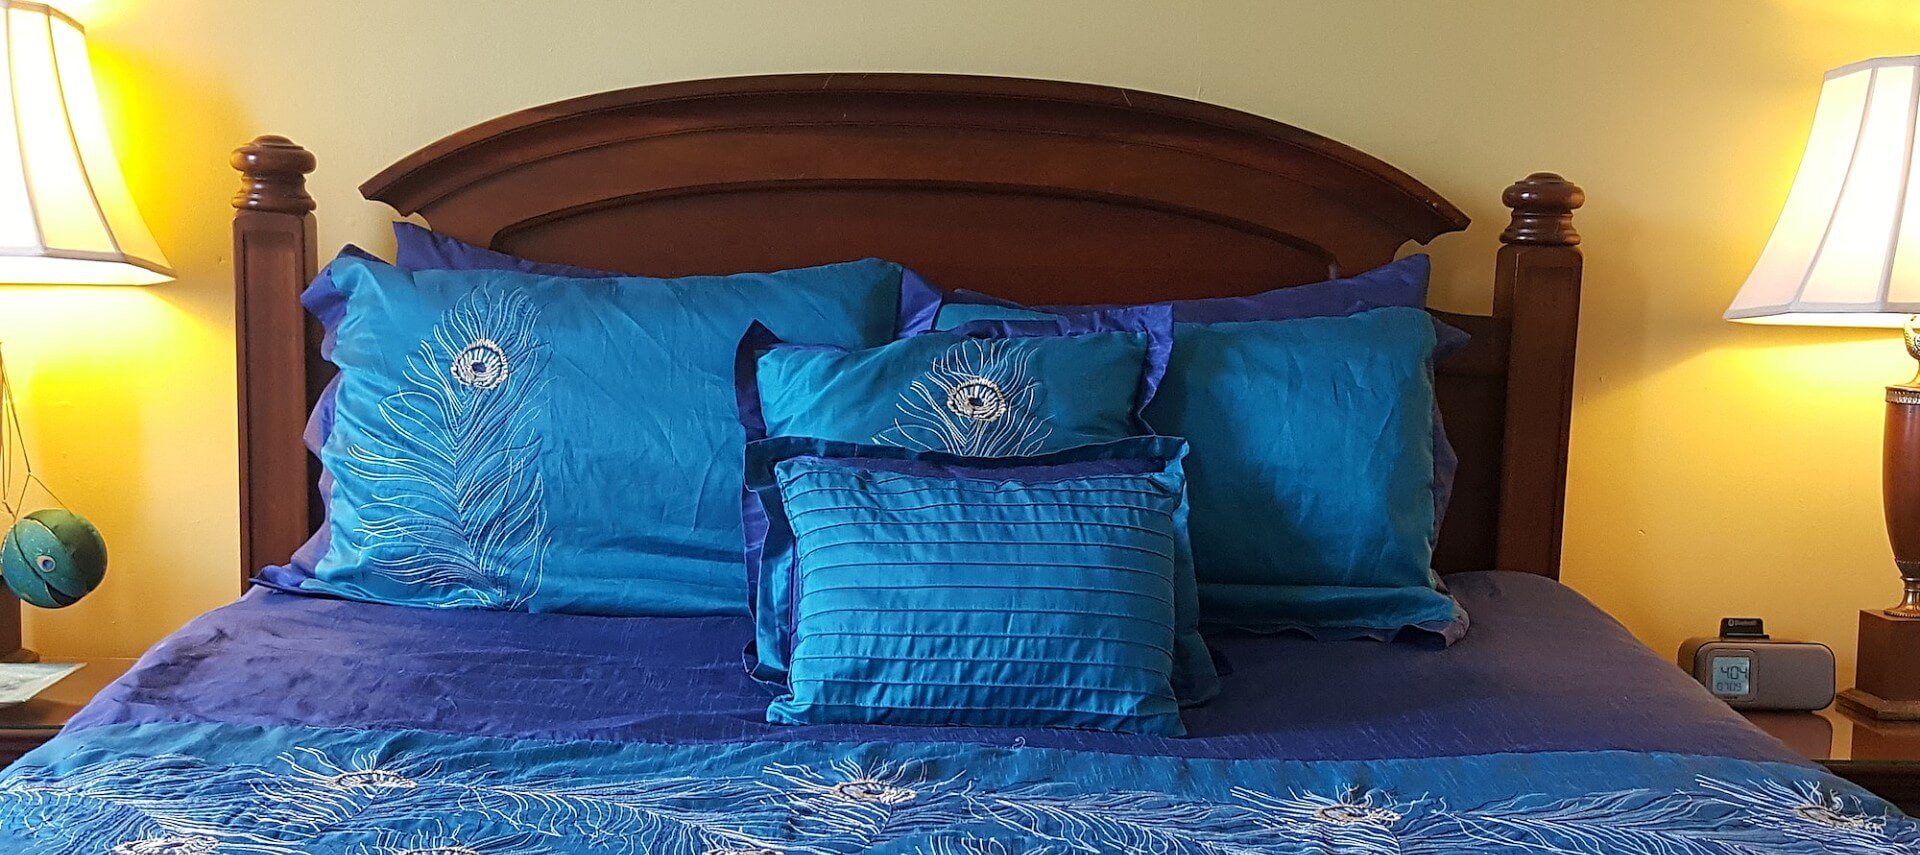 Cherry queen bed made up in peacock blue spread and shams with matching nightstands and lamps.